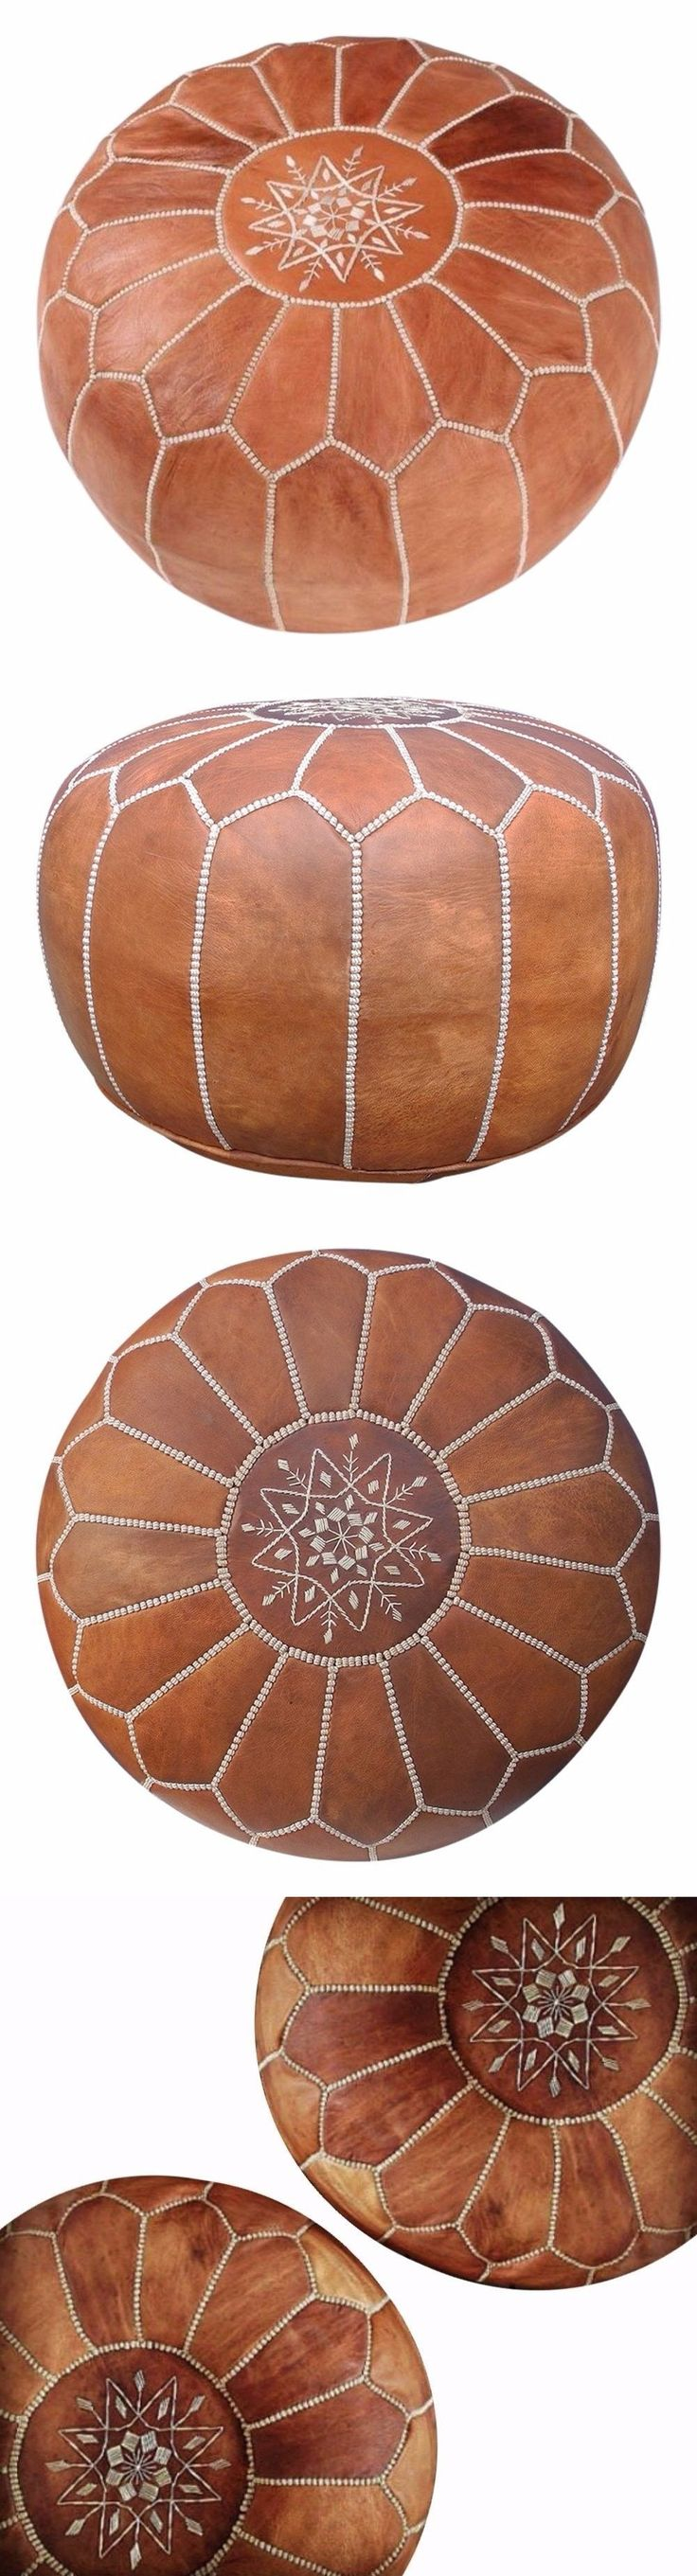 Square handcrafted moroccan leather pouf dark tan pouf pouffe ottoman - Ottomans Footstools And Poufs 20490 Moroccan Pouf Genuine Leather Ottoman Natural Tan Brown Footstool